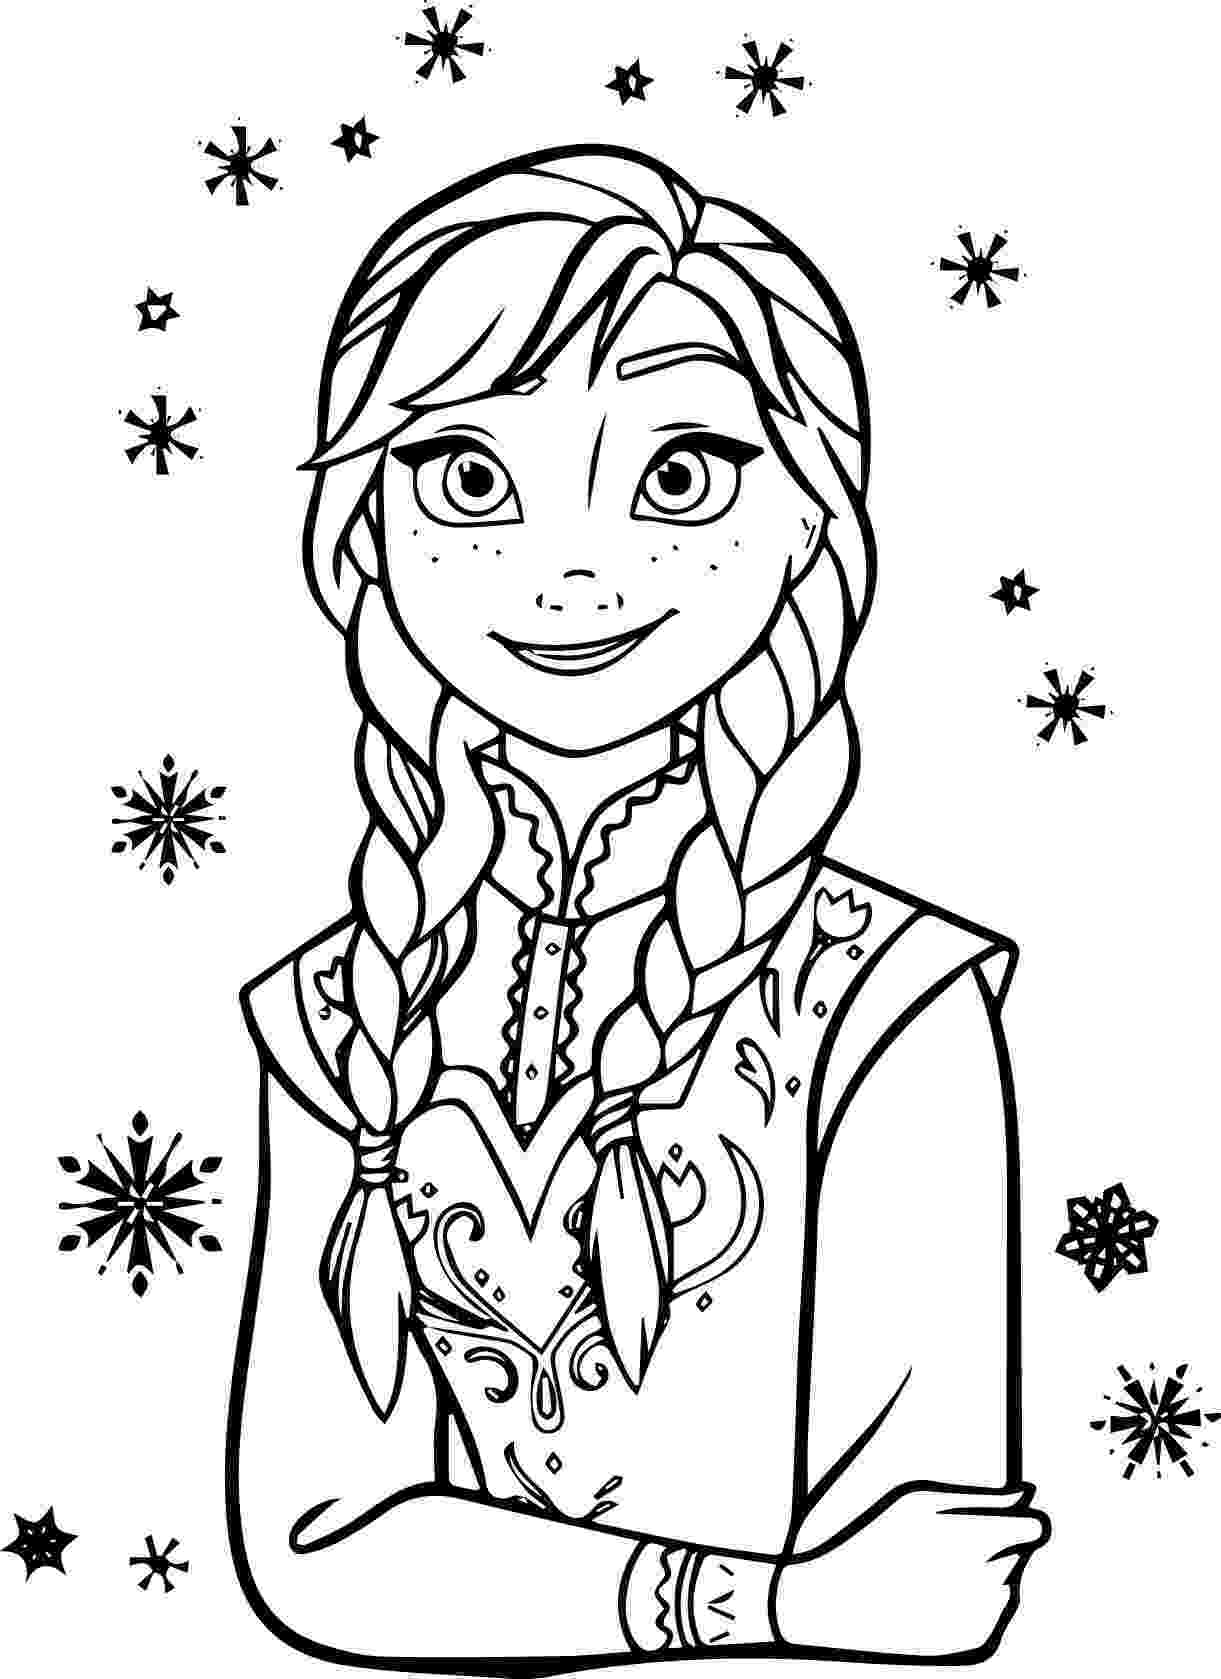 frozen anna coloring pages 12 free printable disney frozen coloring pages anna anna frozen pages coloring